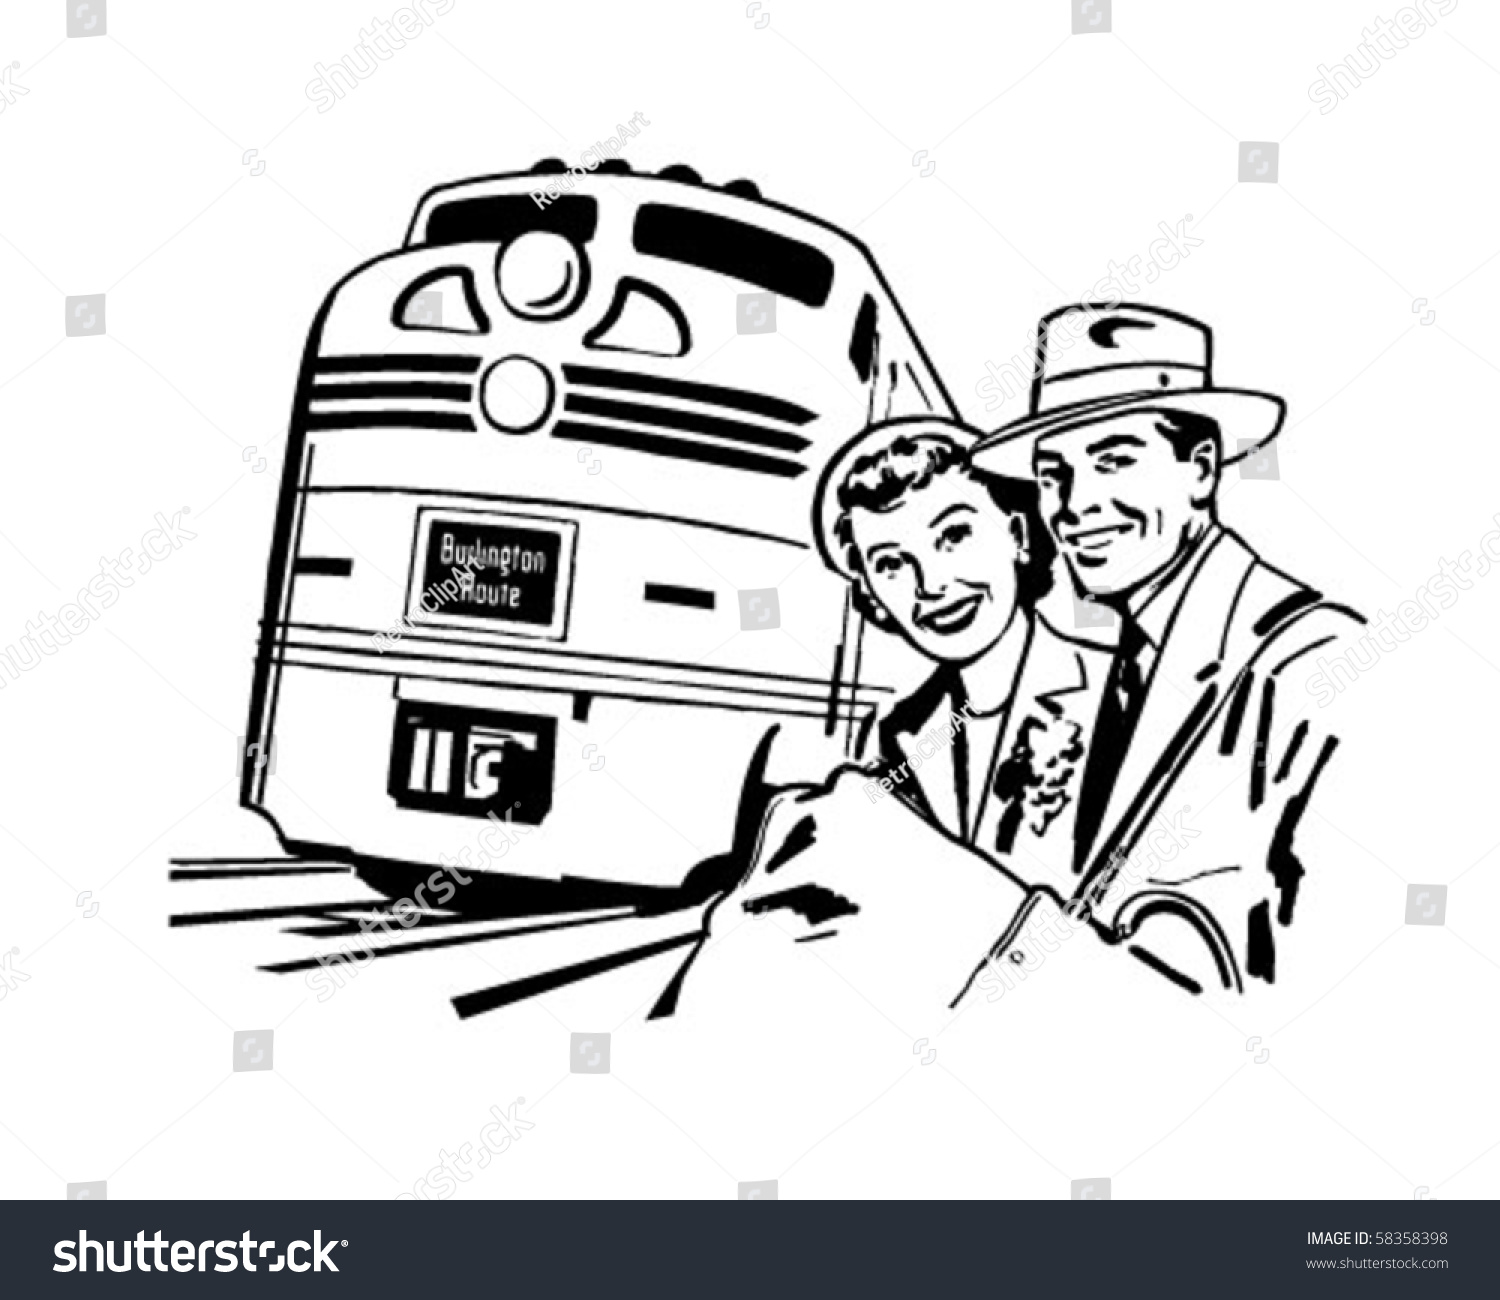 vintage travel clipart black and white - photo #26